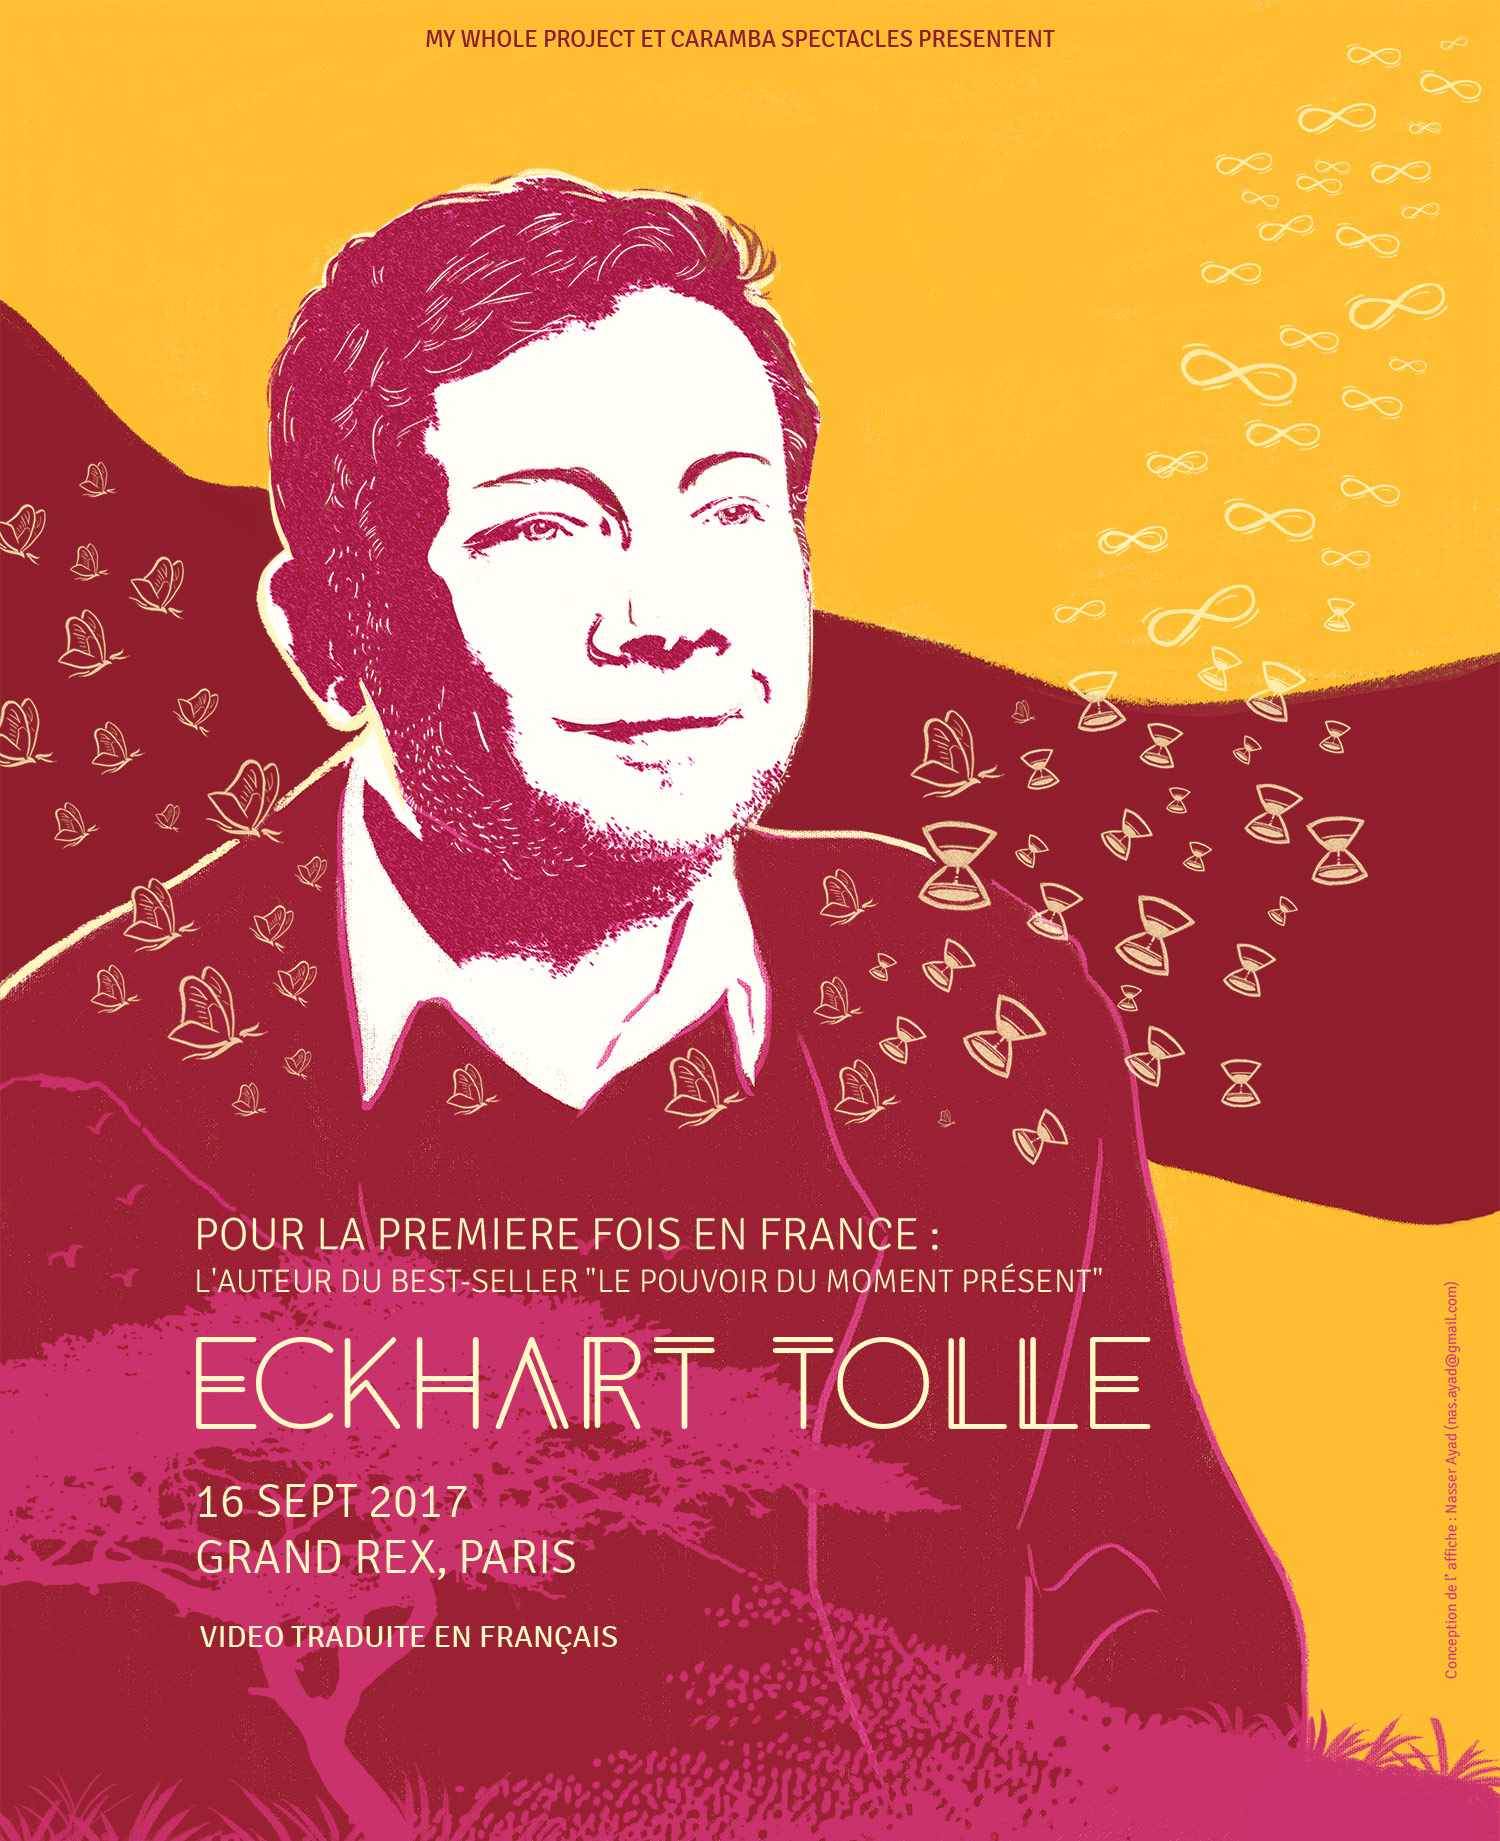 Eckhart Tolle 2017 GRAND REX Paris 01forlife mywholeproject